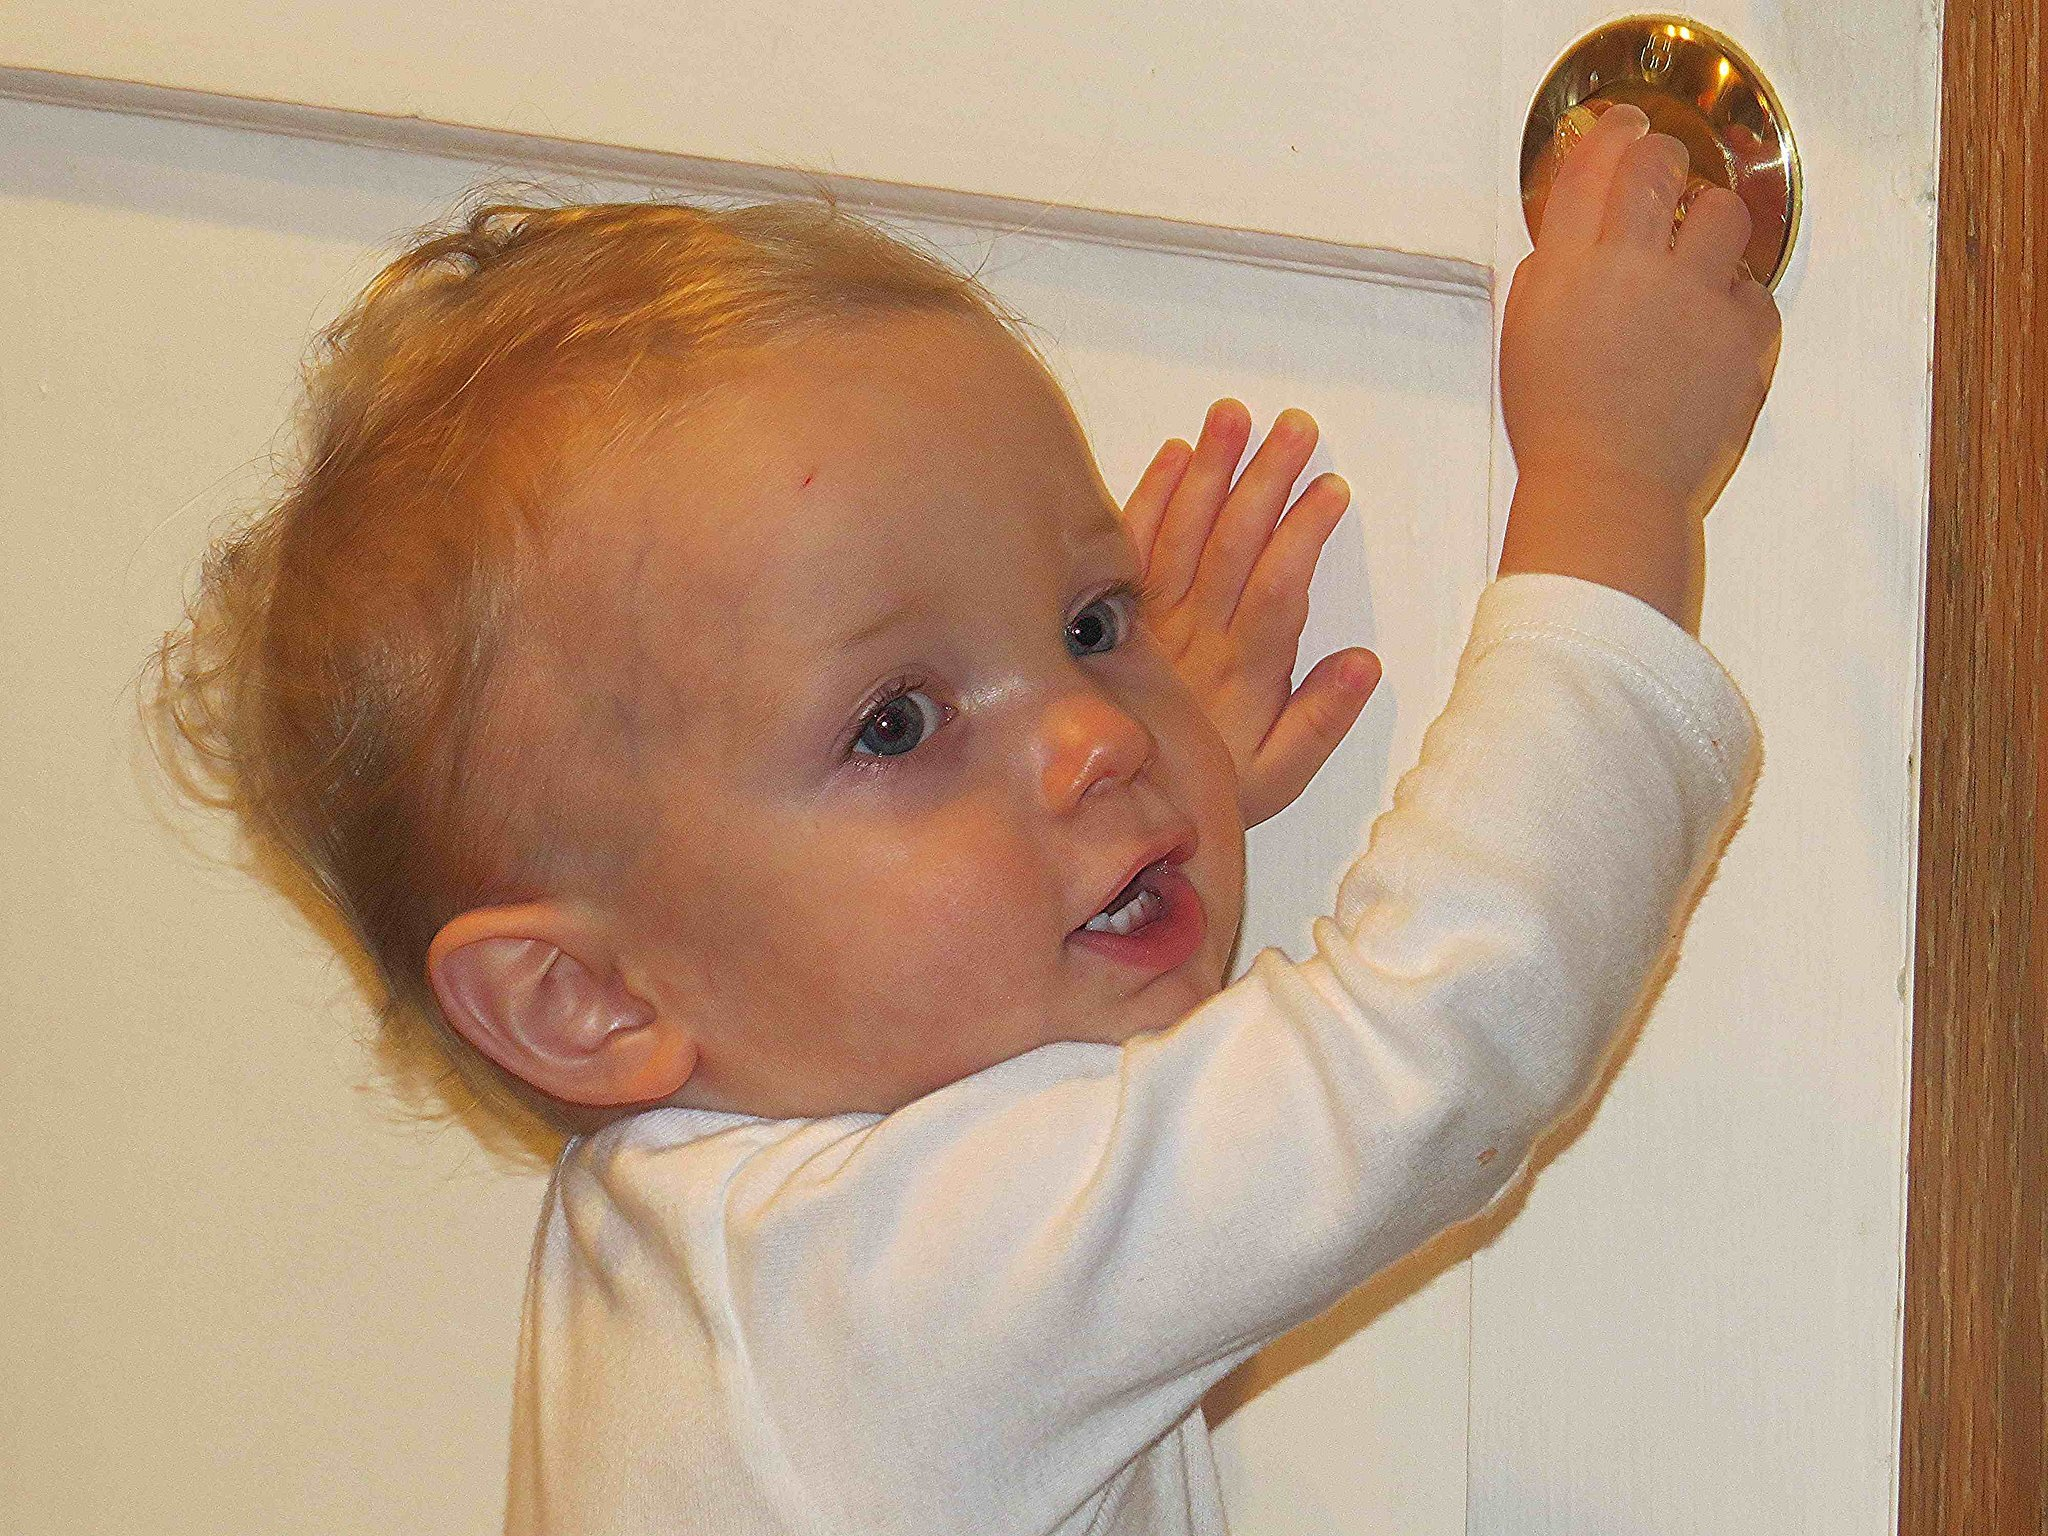 Locking the door is much easier than explaining what Mommy and Daddy are doing behind it.